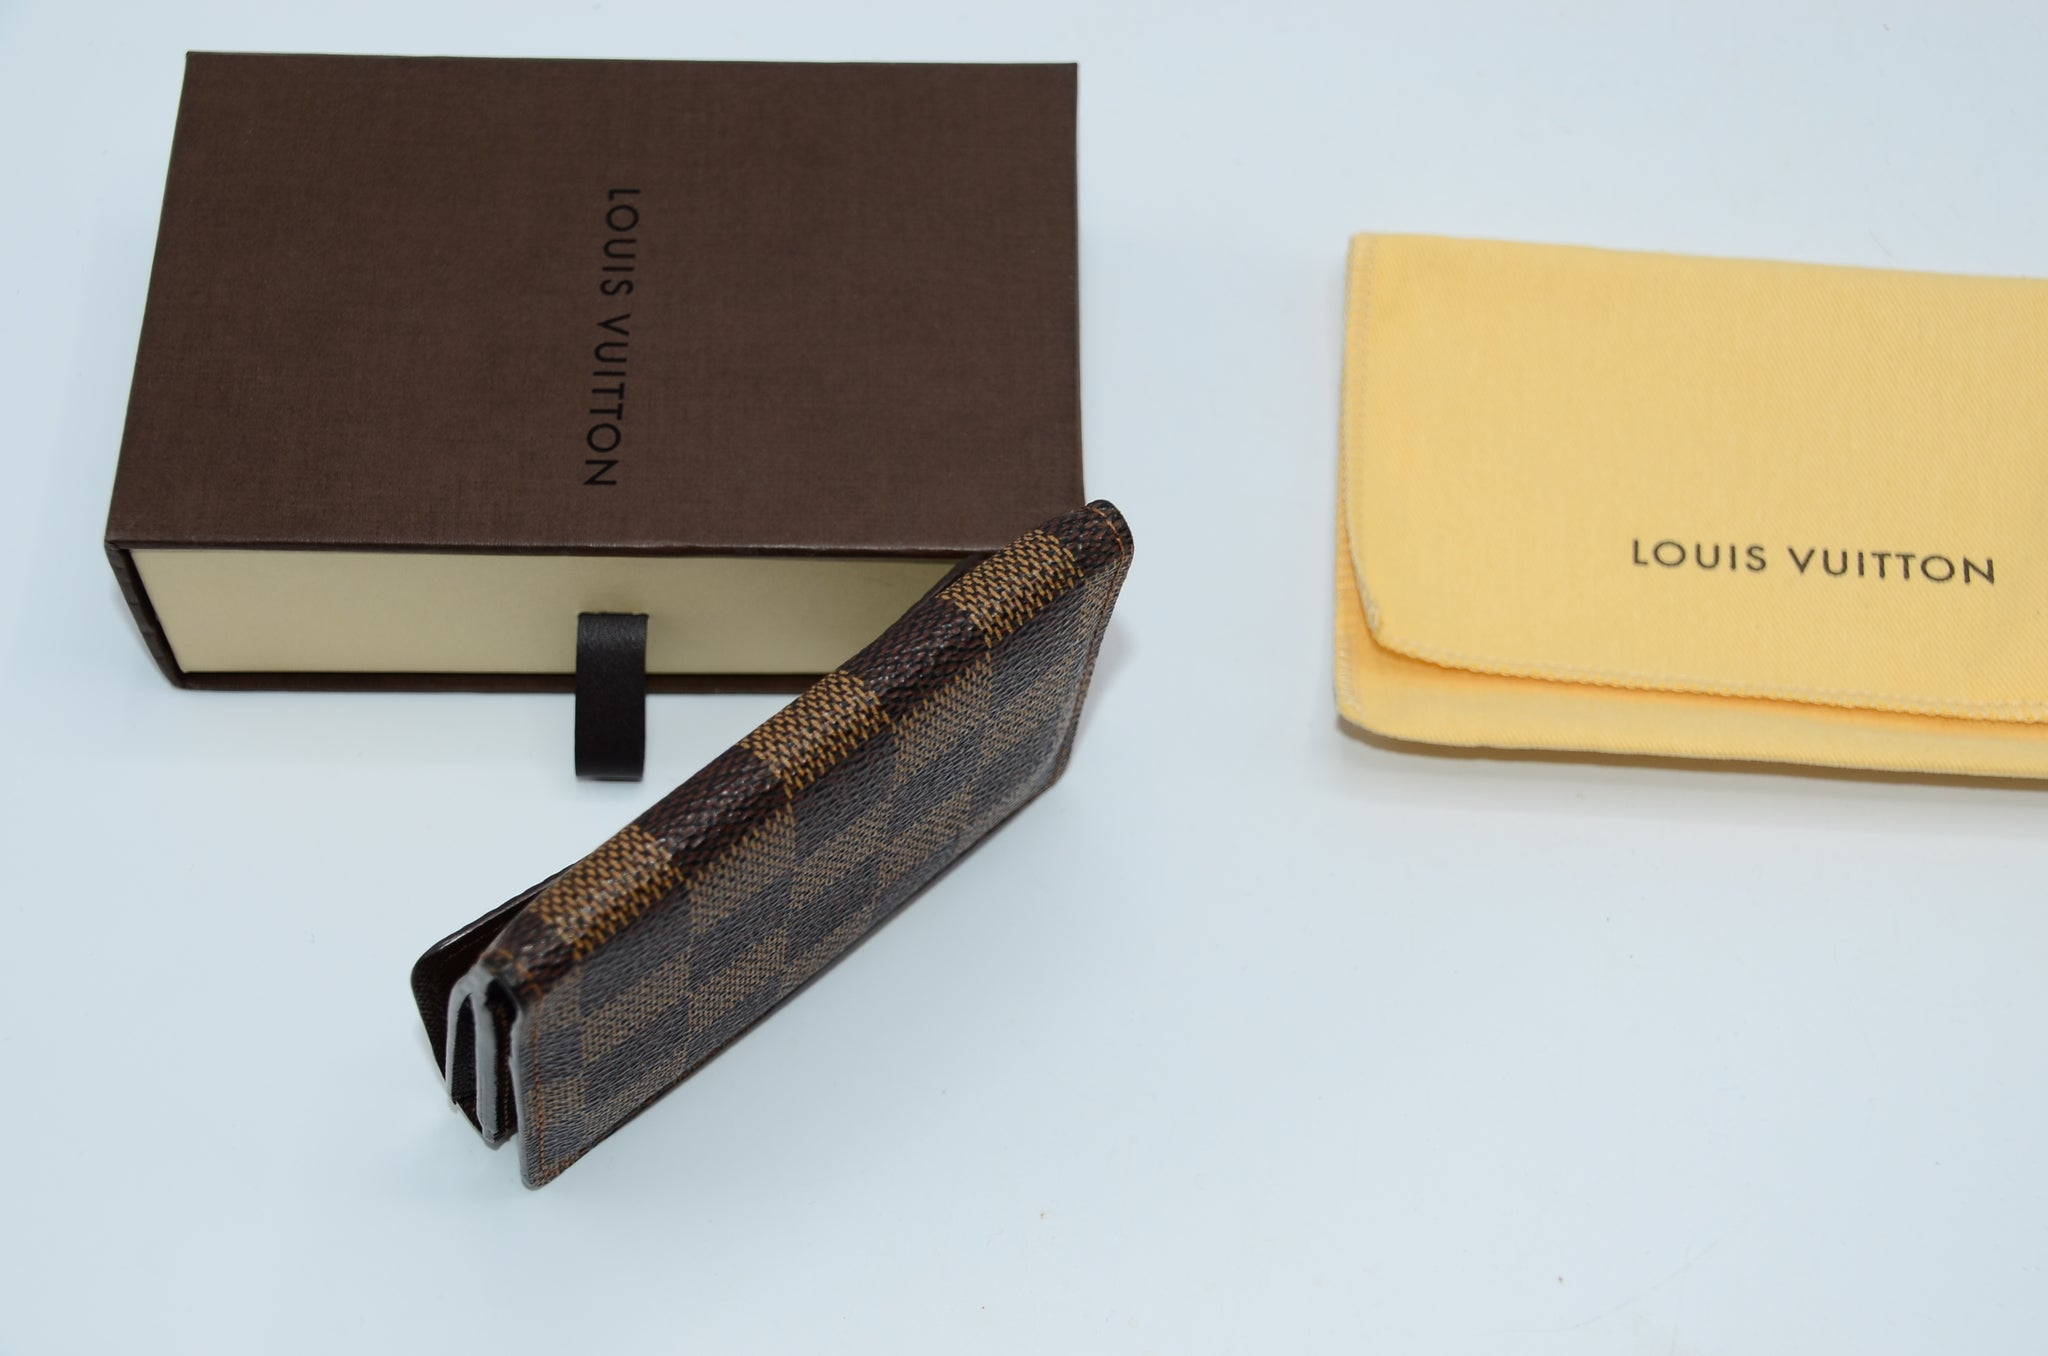 Louis Vuitton Compact Wallet - Iconics Preloved Luxury